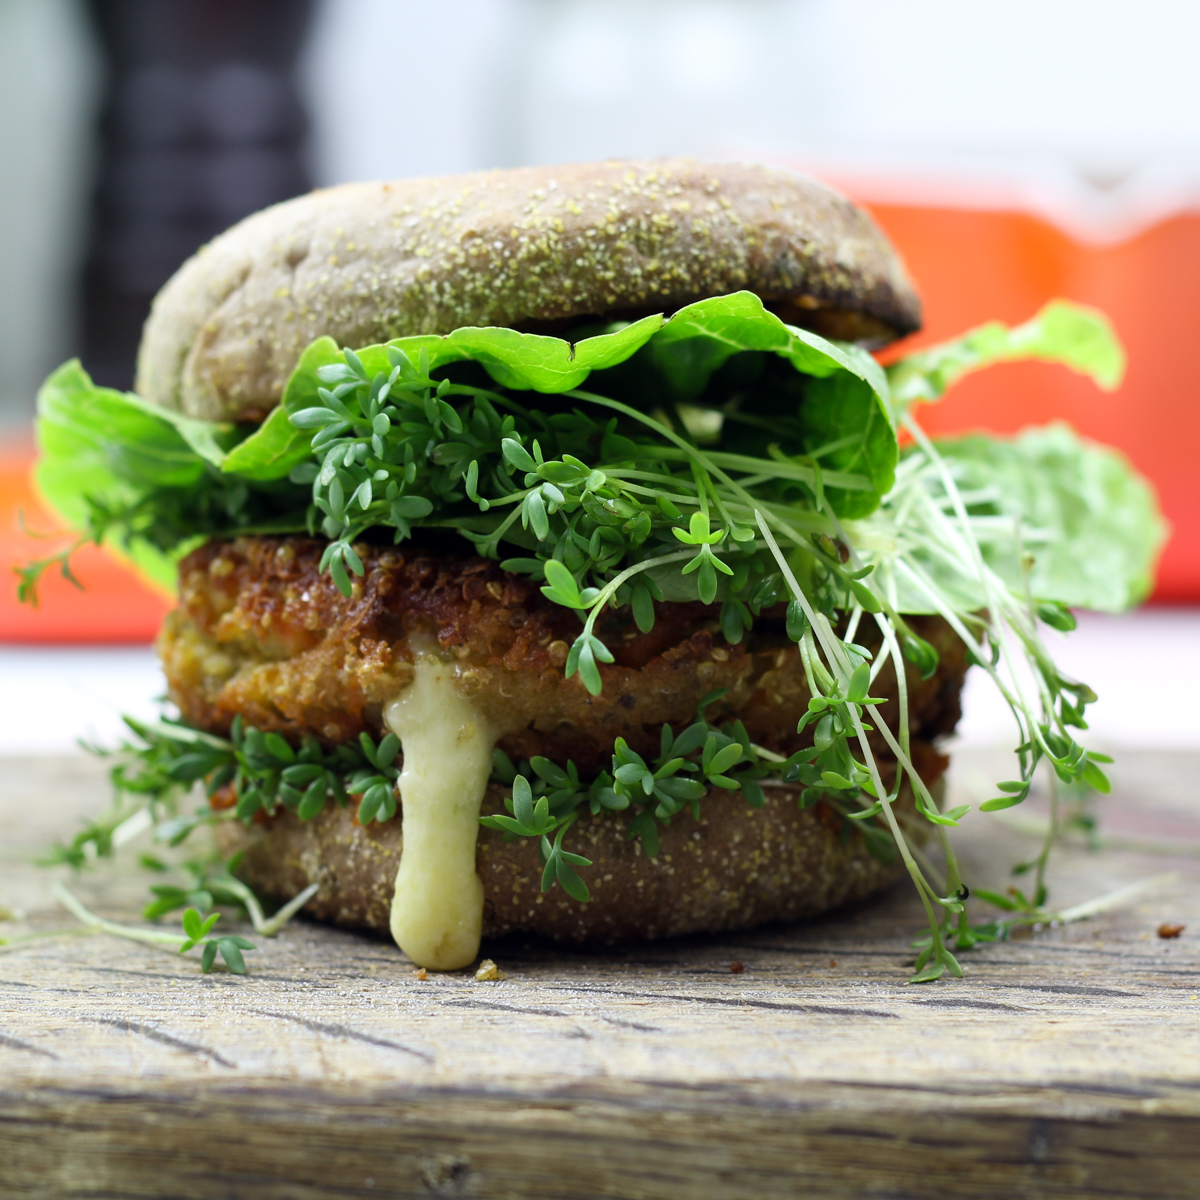 kitchenmate-quinoa-burger-6